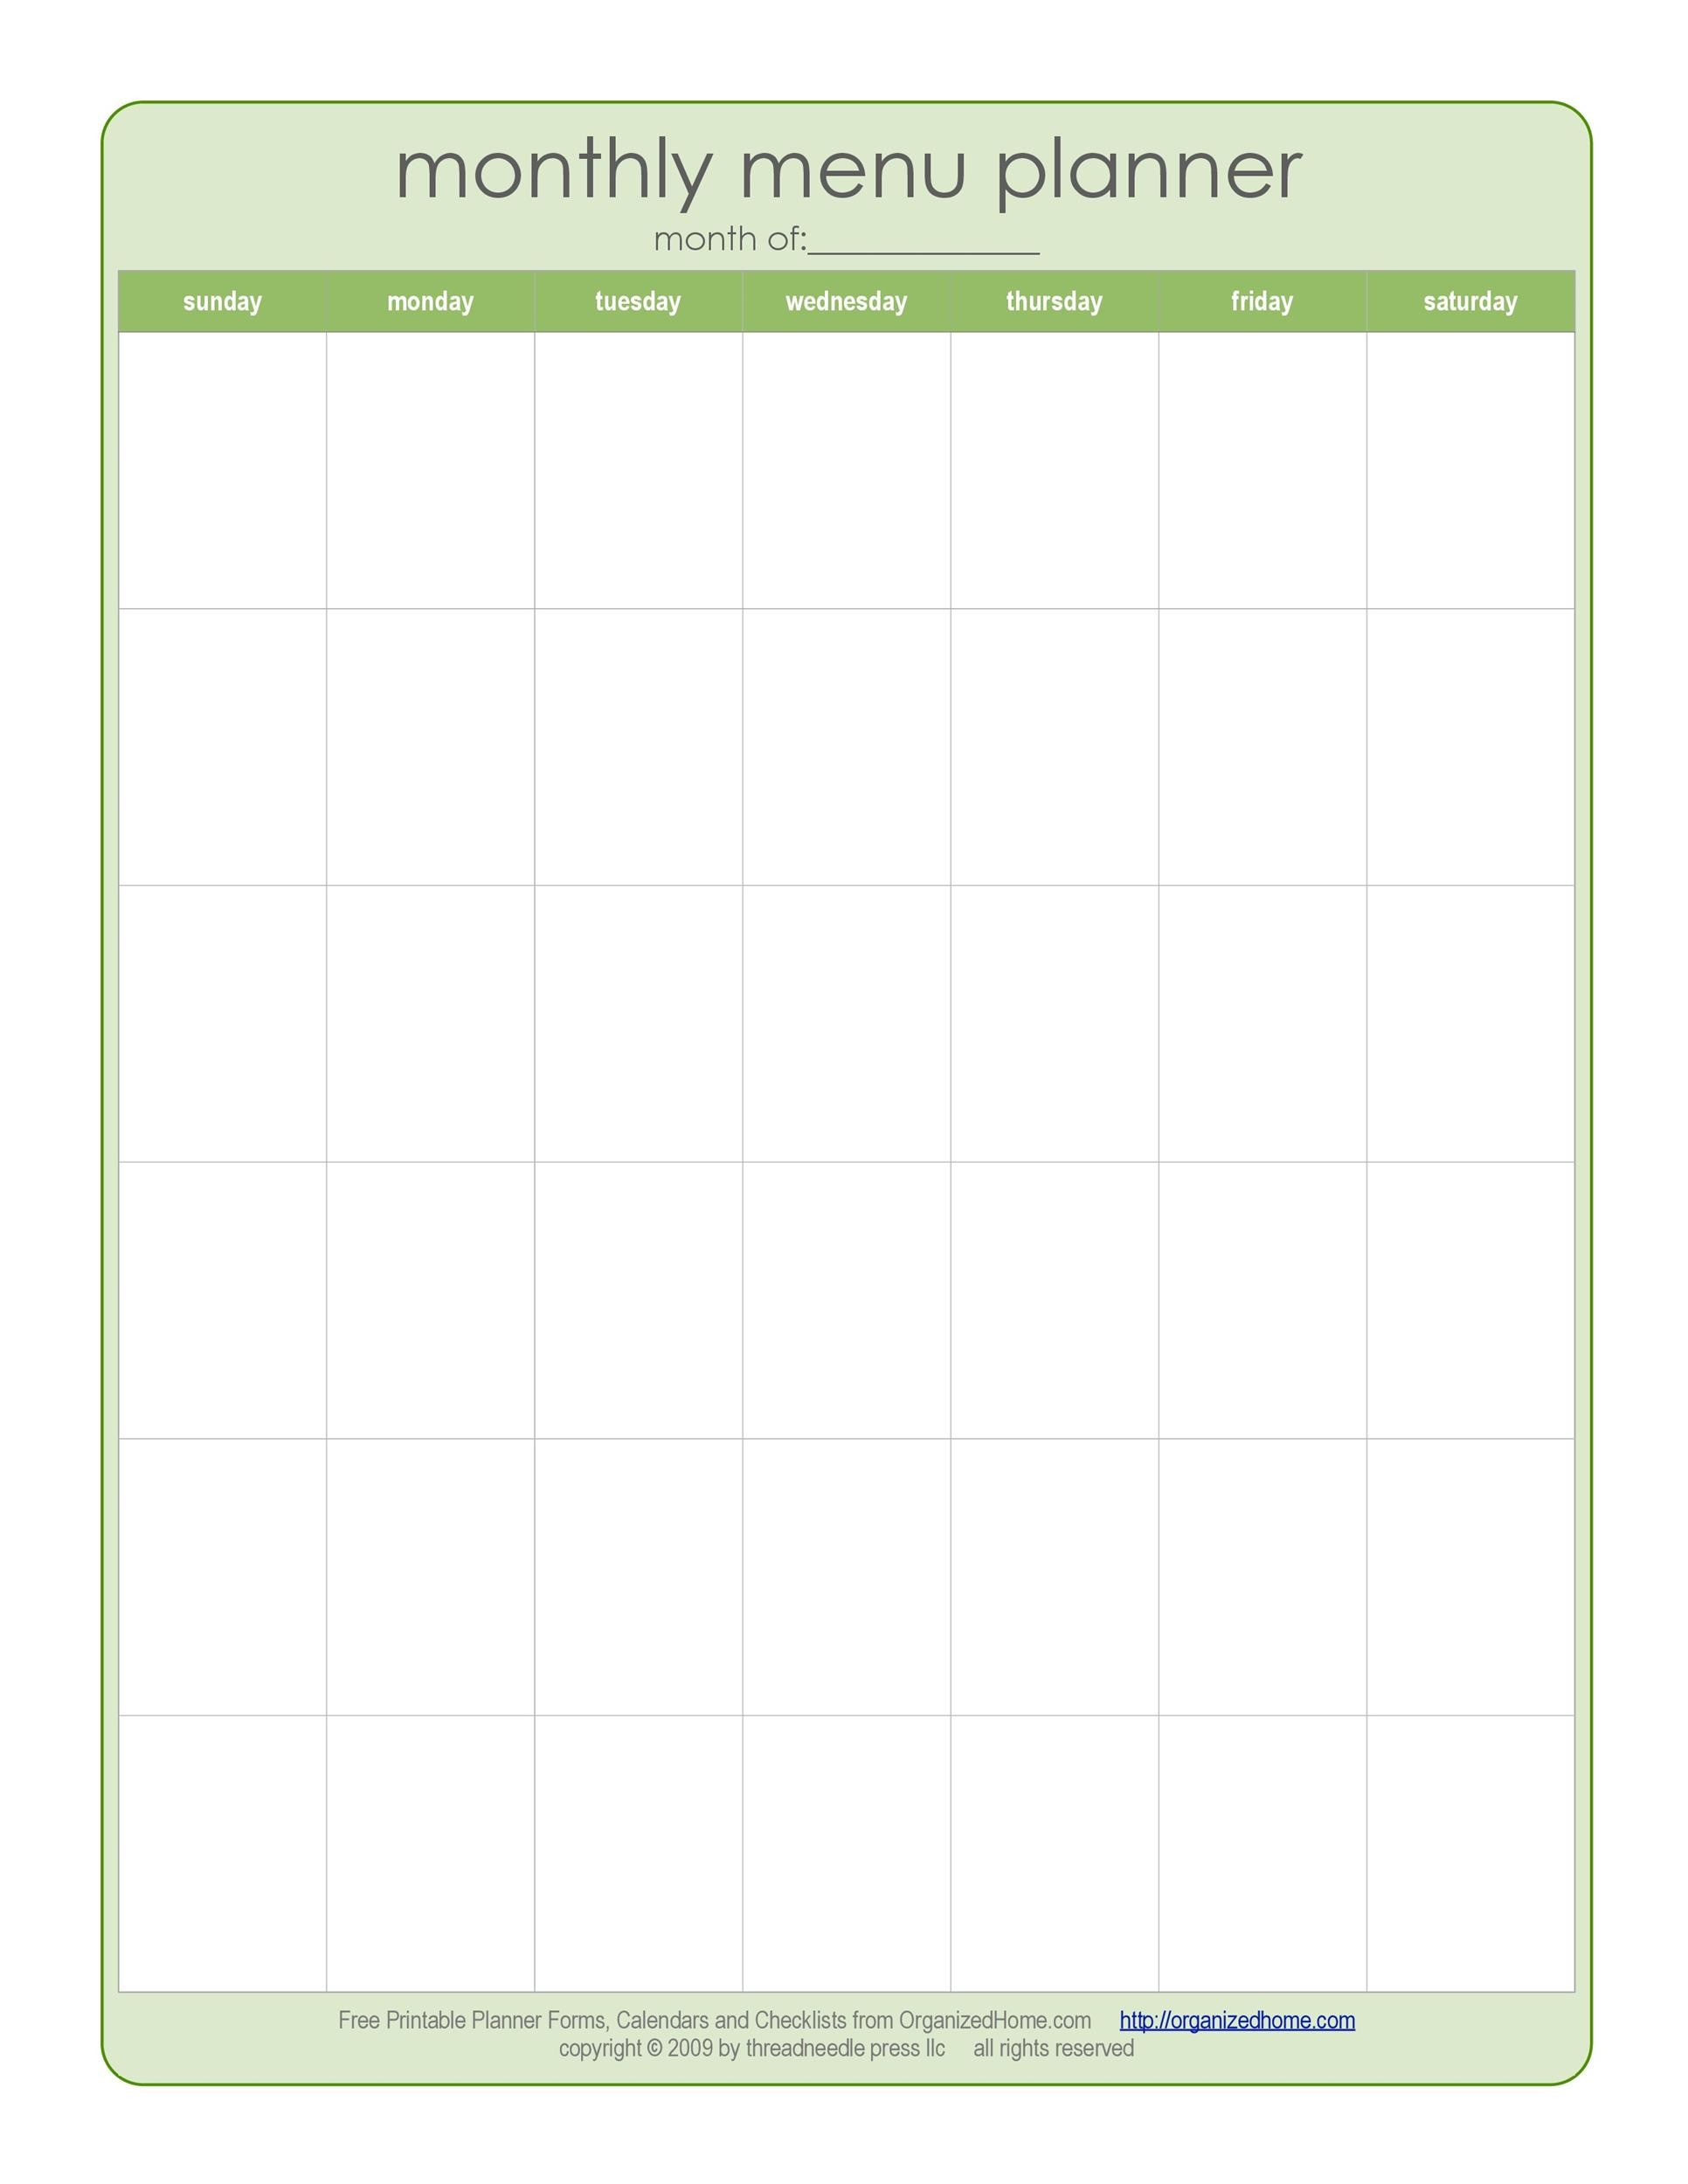 40 Weekly Meal Planning Templates Template Lab – Free Menu Planner Template